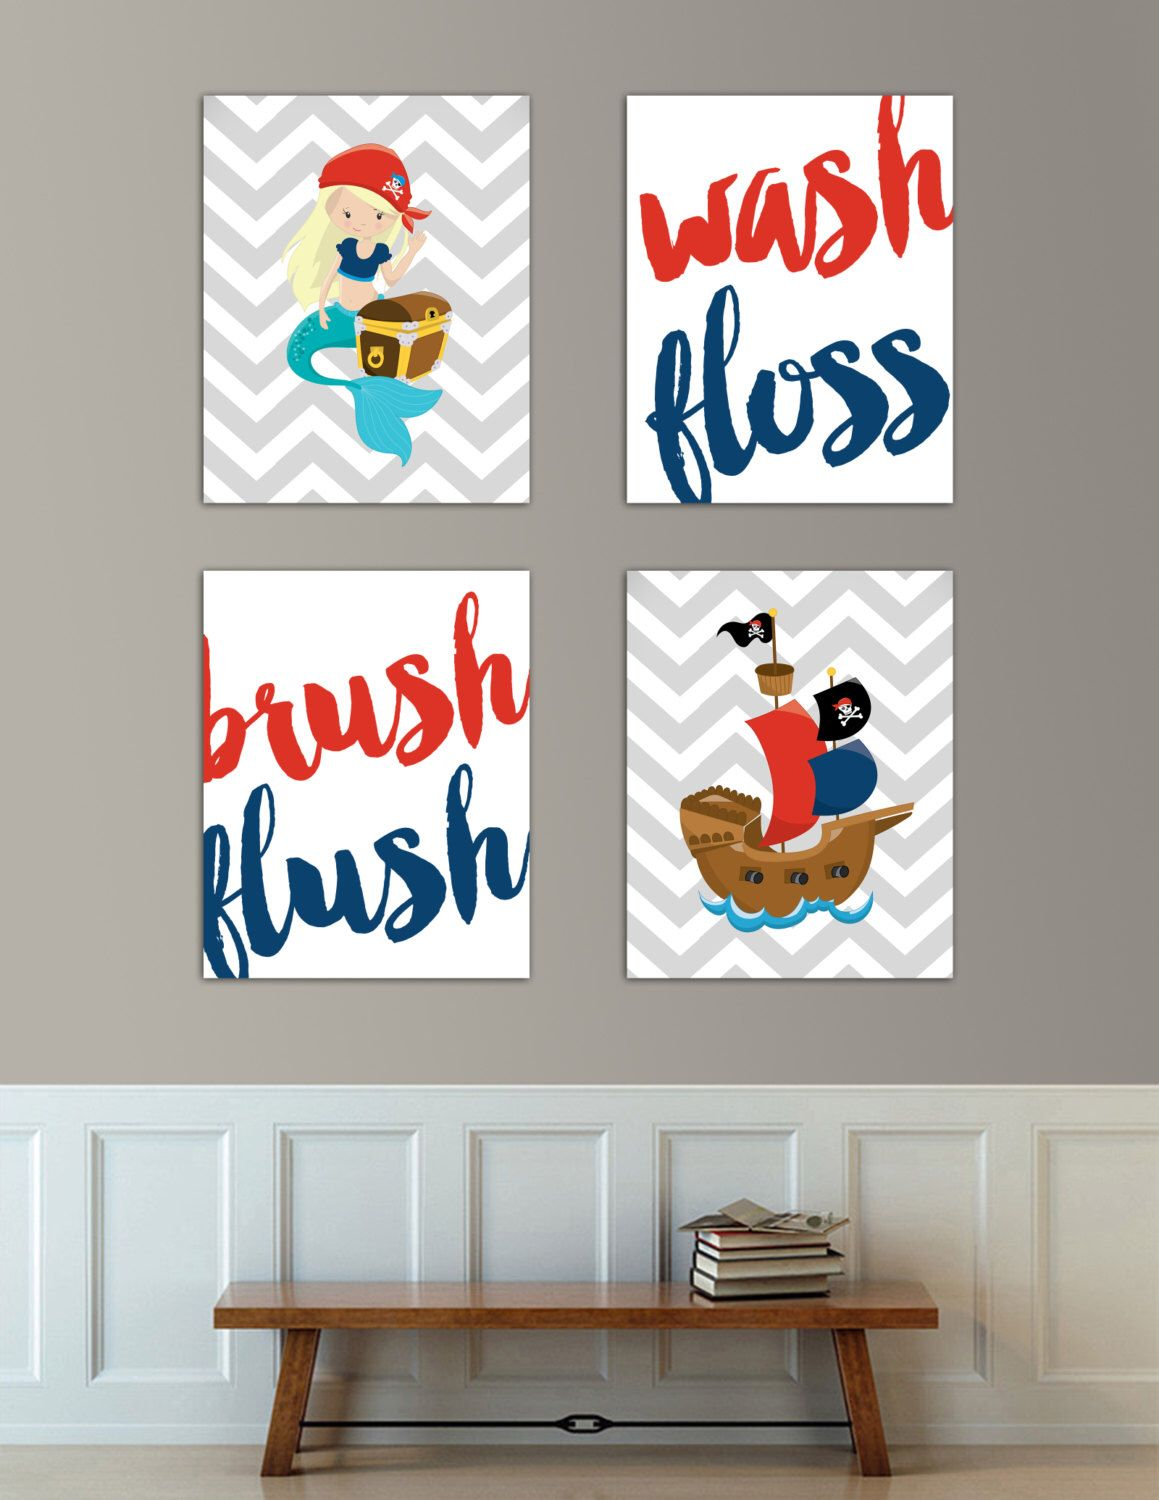 Kids Bathroom Wall Art sale!!! kids bathroom art | wash brush floss flush | pirate